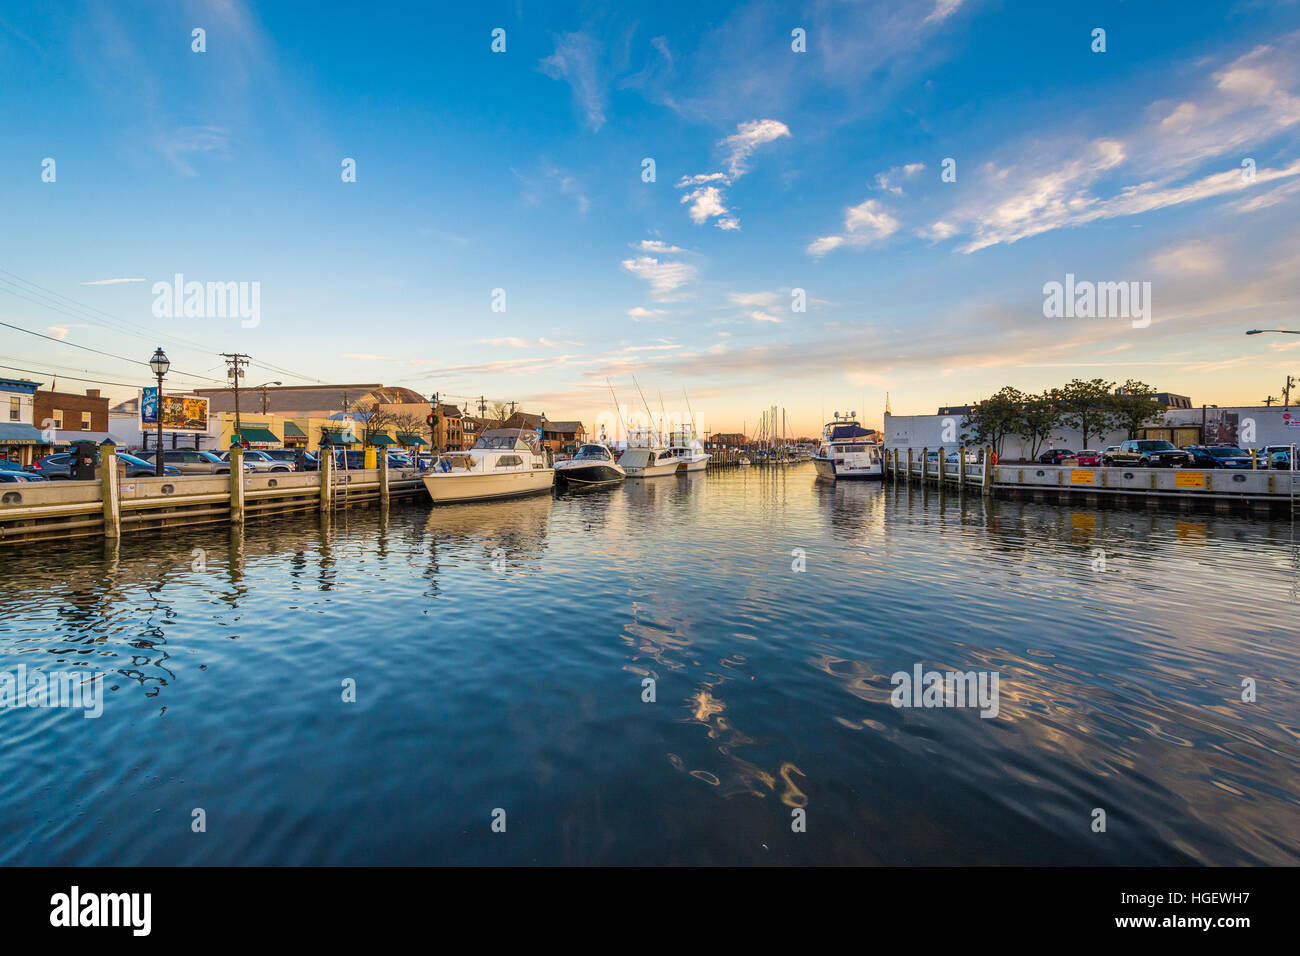 The waterfront at sunset, in Annapolis, Maryland. - Stock Image